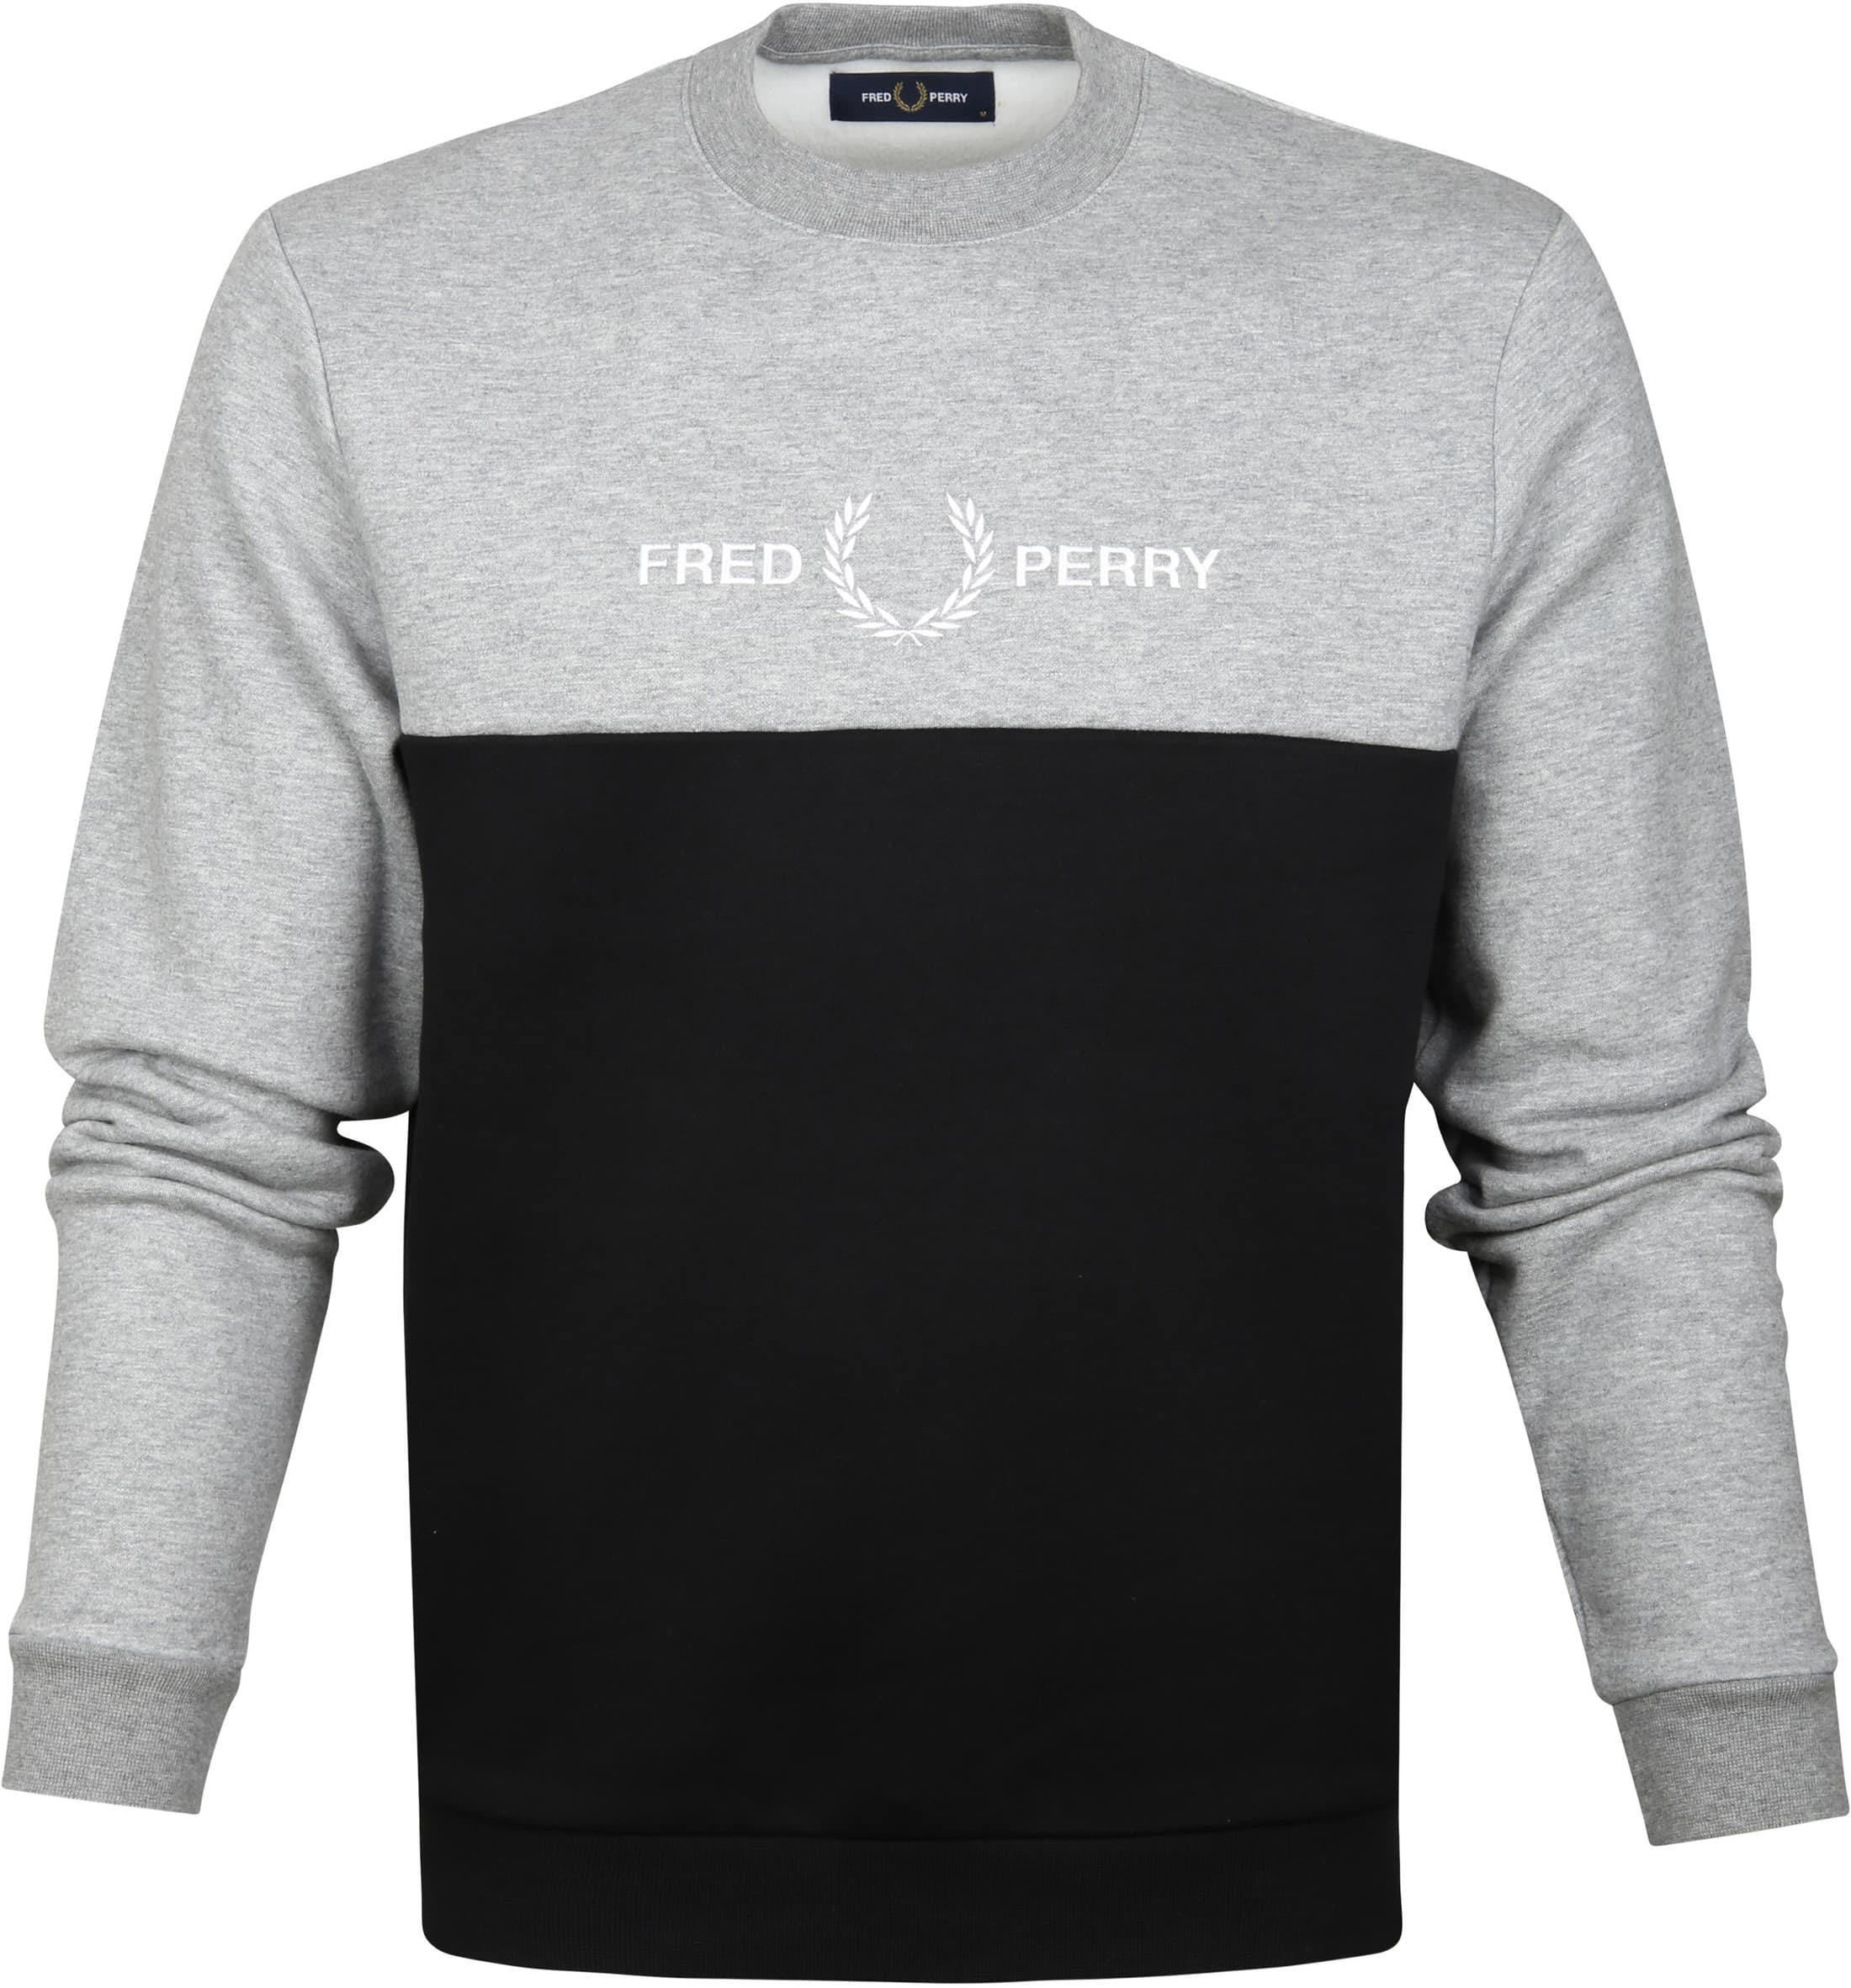 Fred Perry Sweater Grey Black Logo foto 0